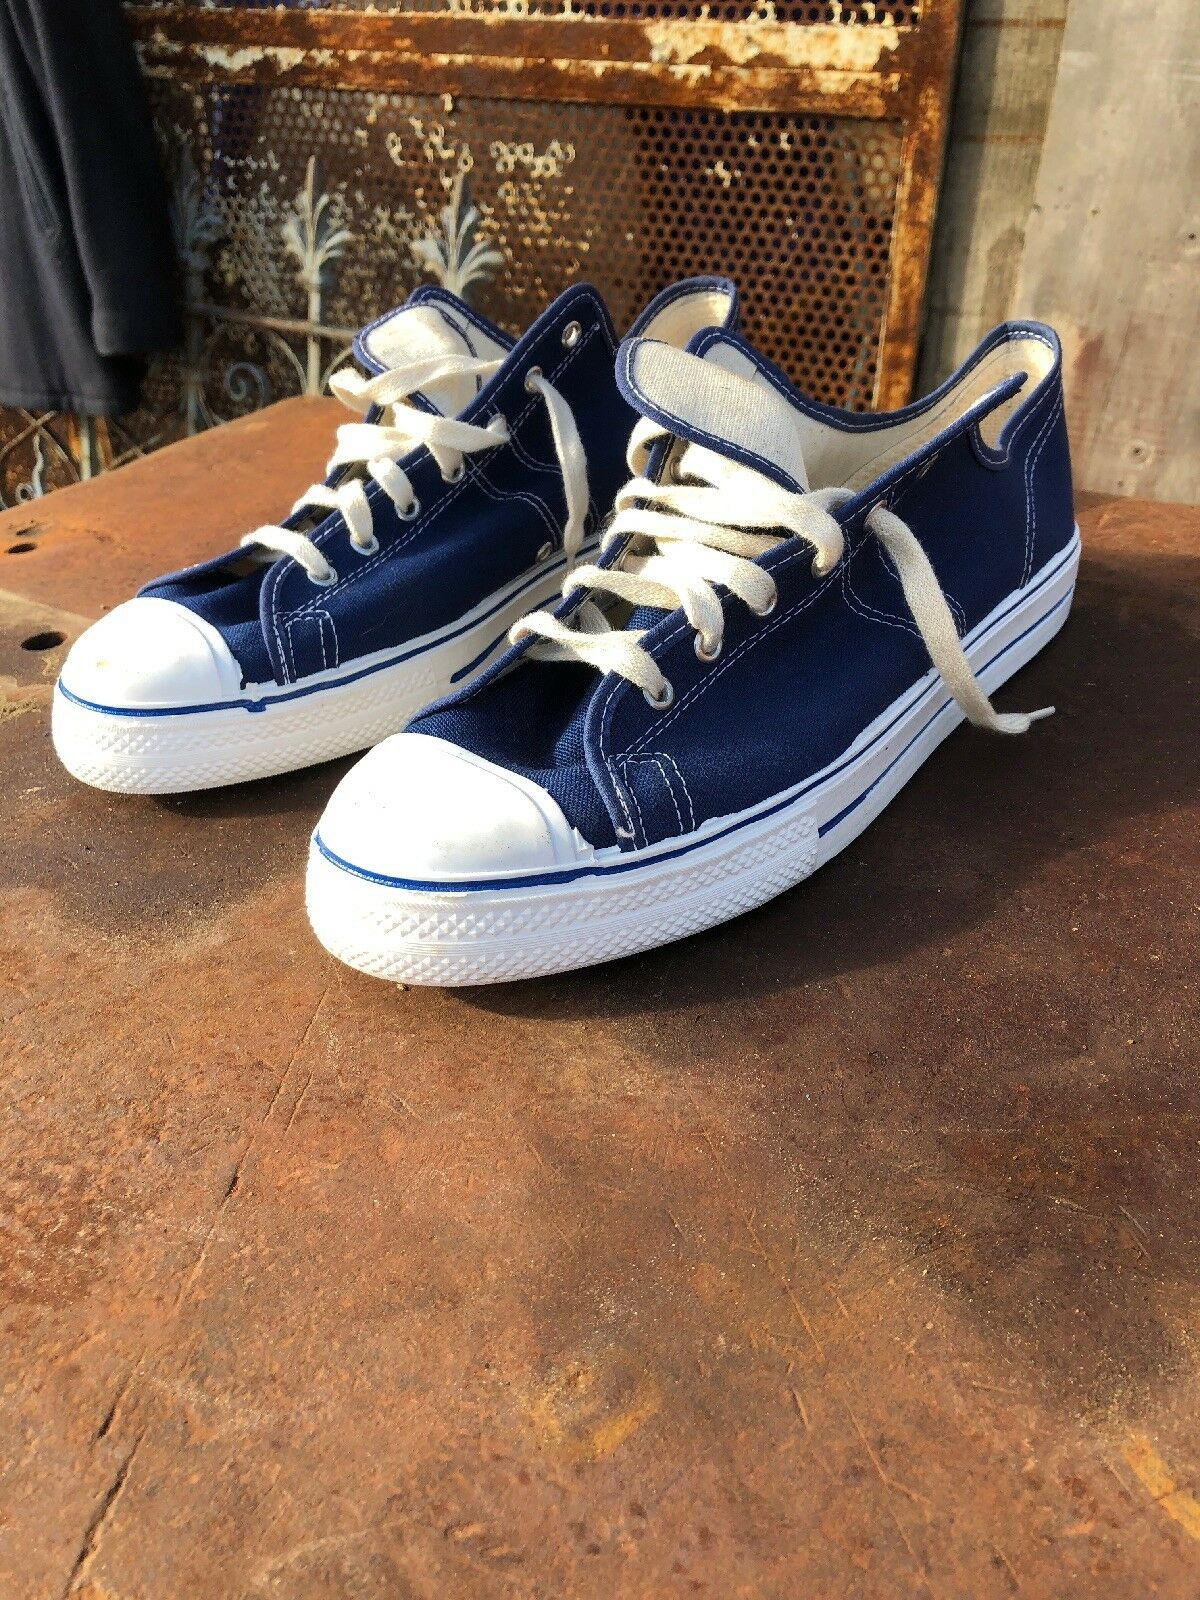 Converse Vintage Chuck Taylor All Stars Sneakers--bluee--Sz 13--RARE Made in USA